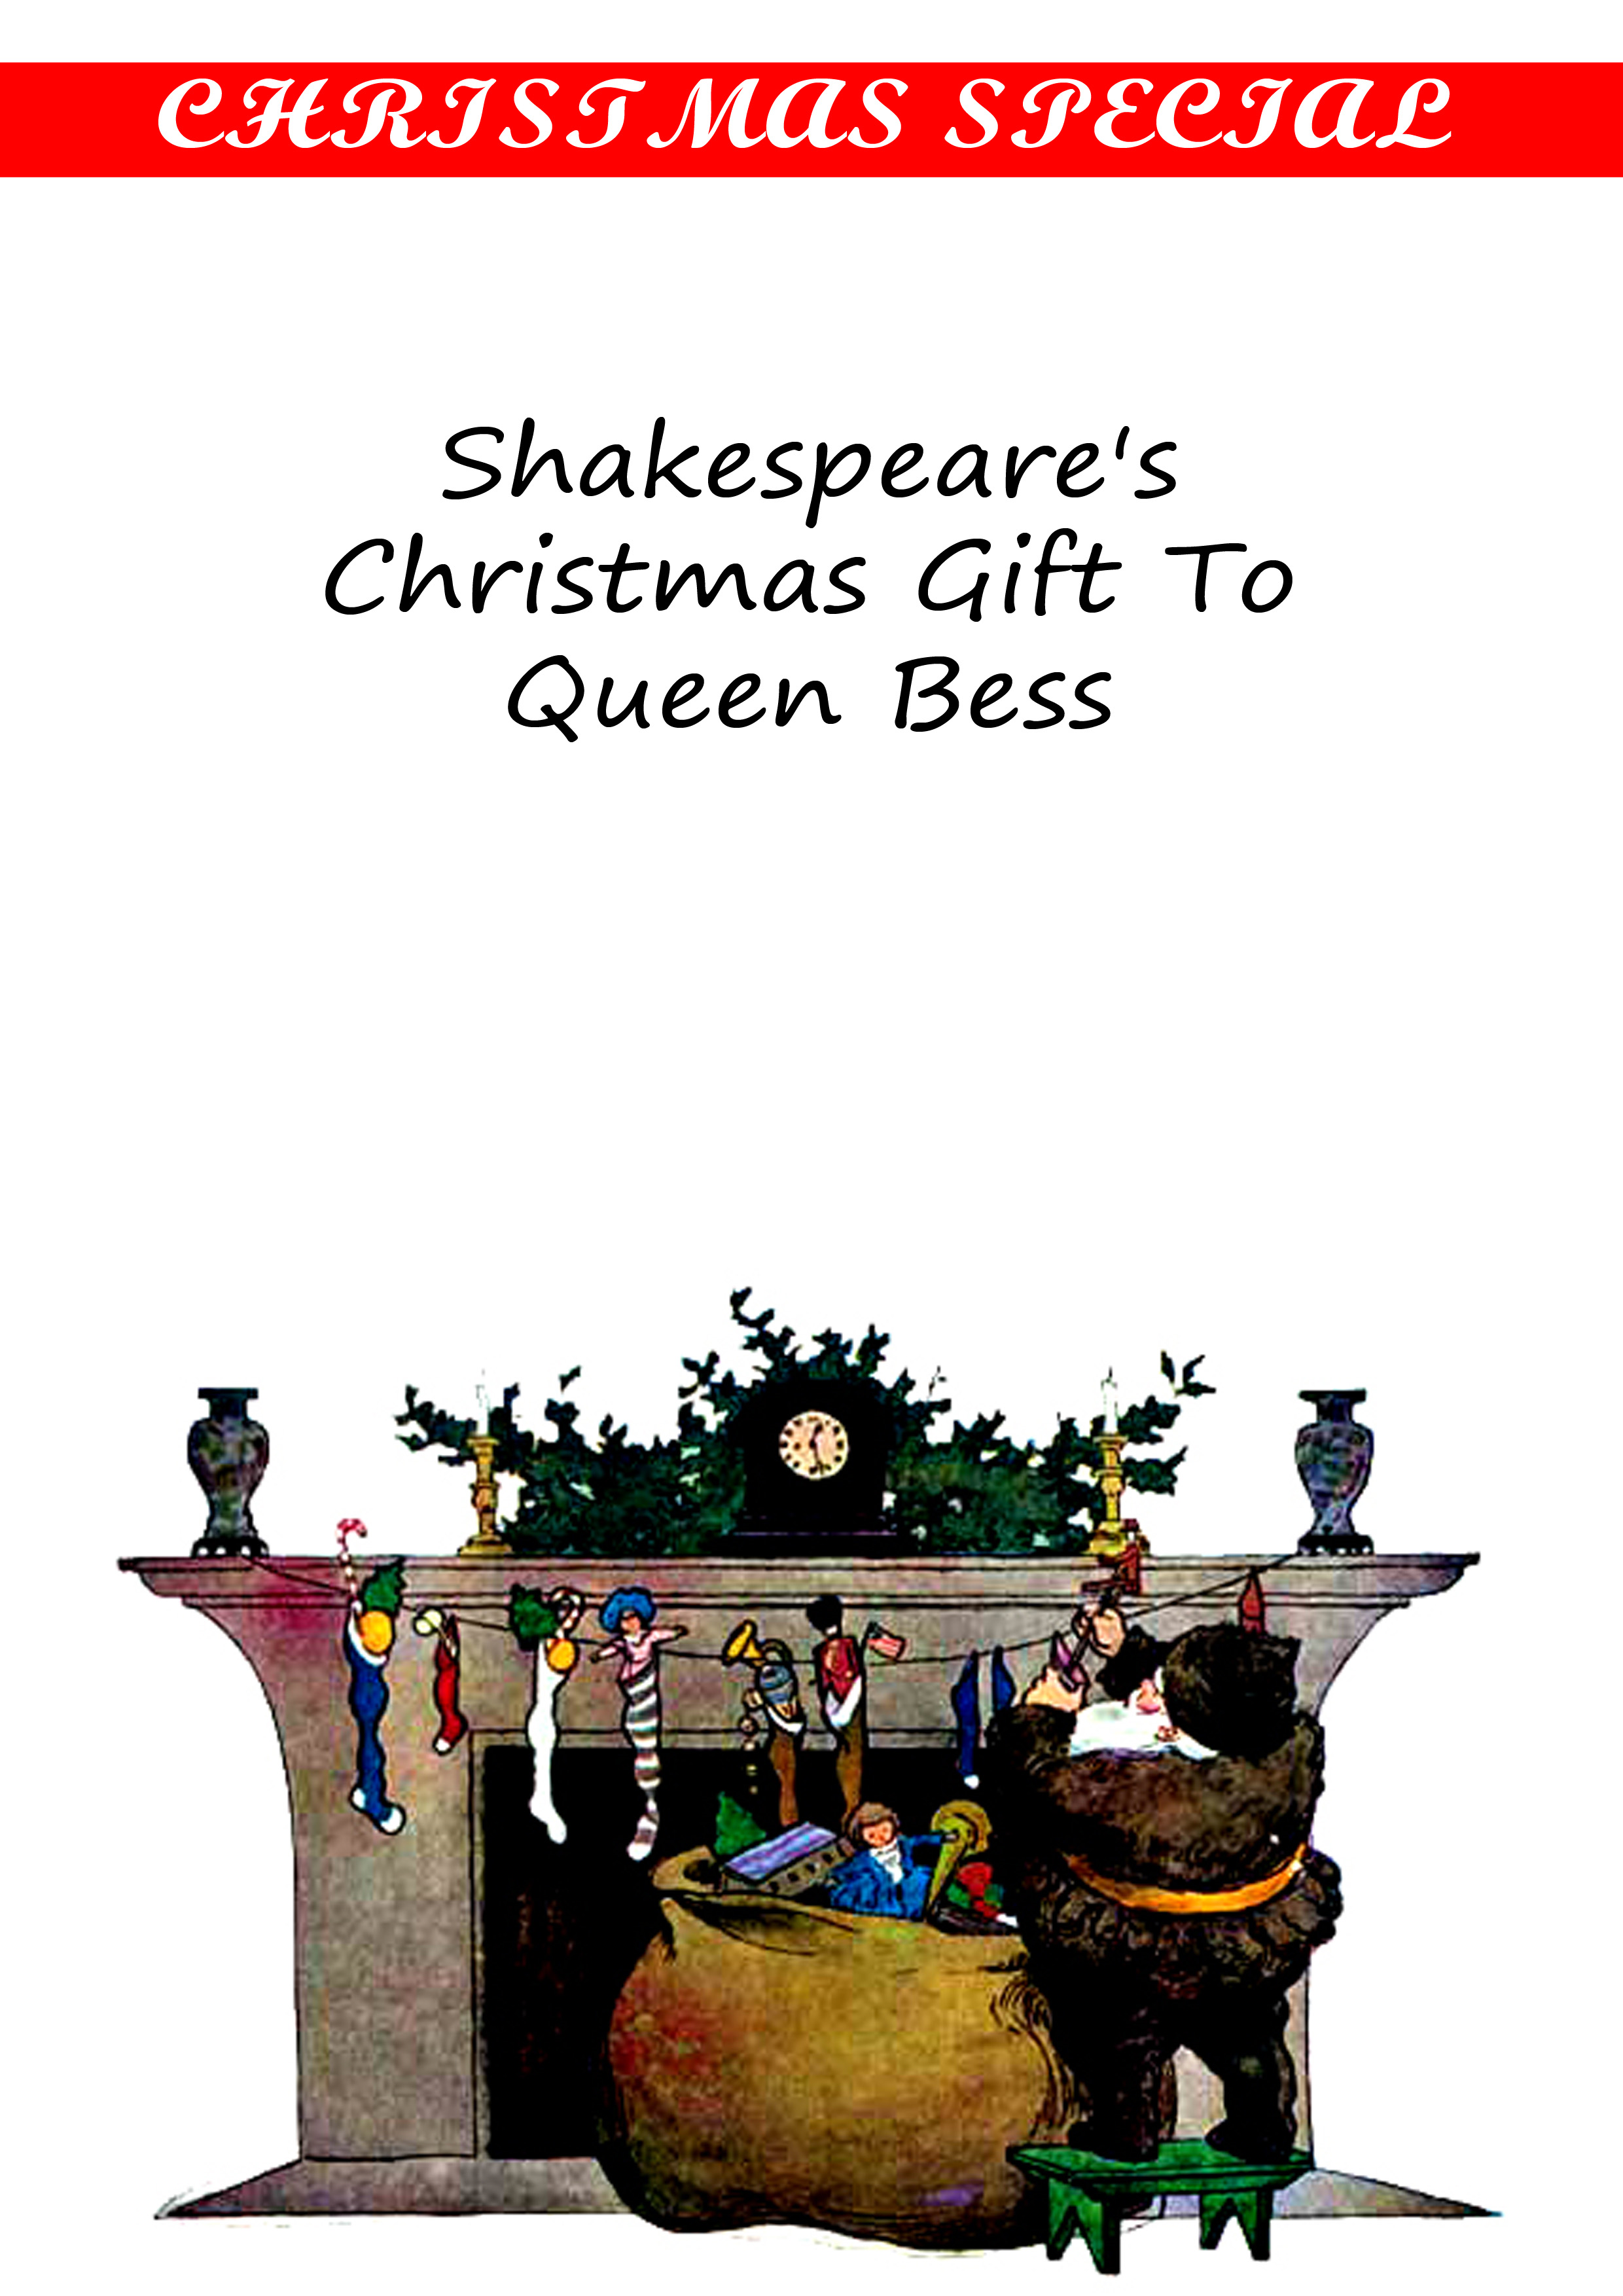 Shakespeare's Christmas Gift To Queen Bess By: Anna Benneson McMahan